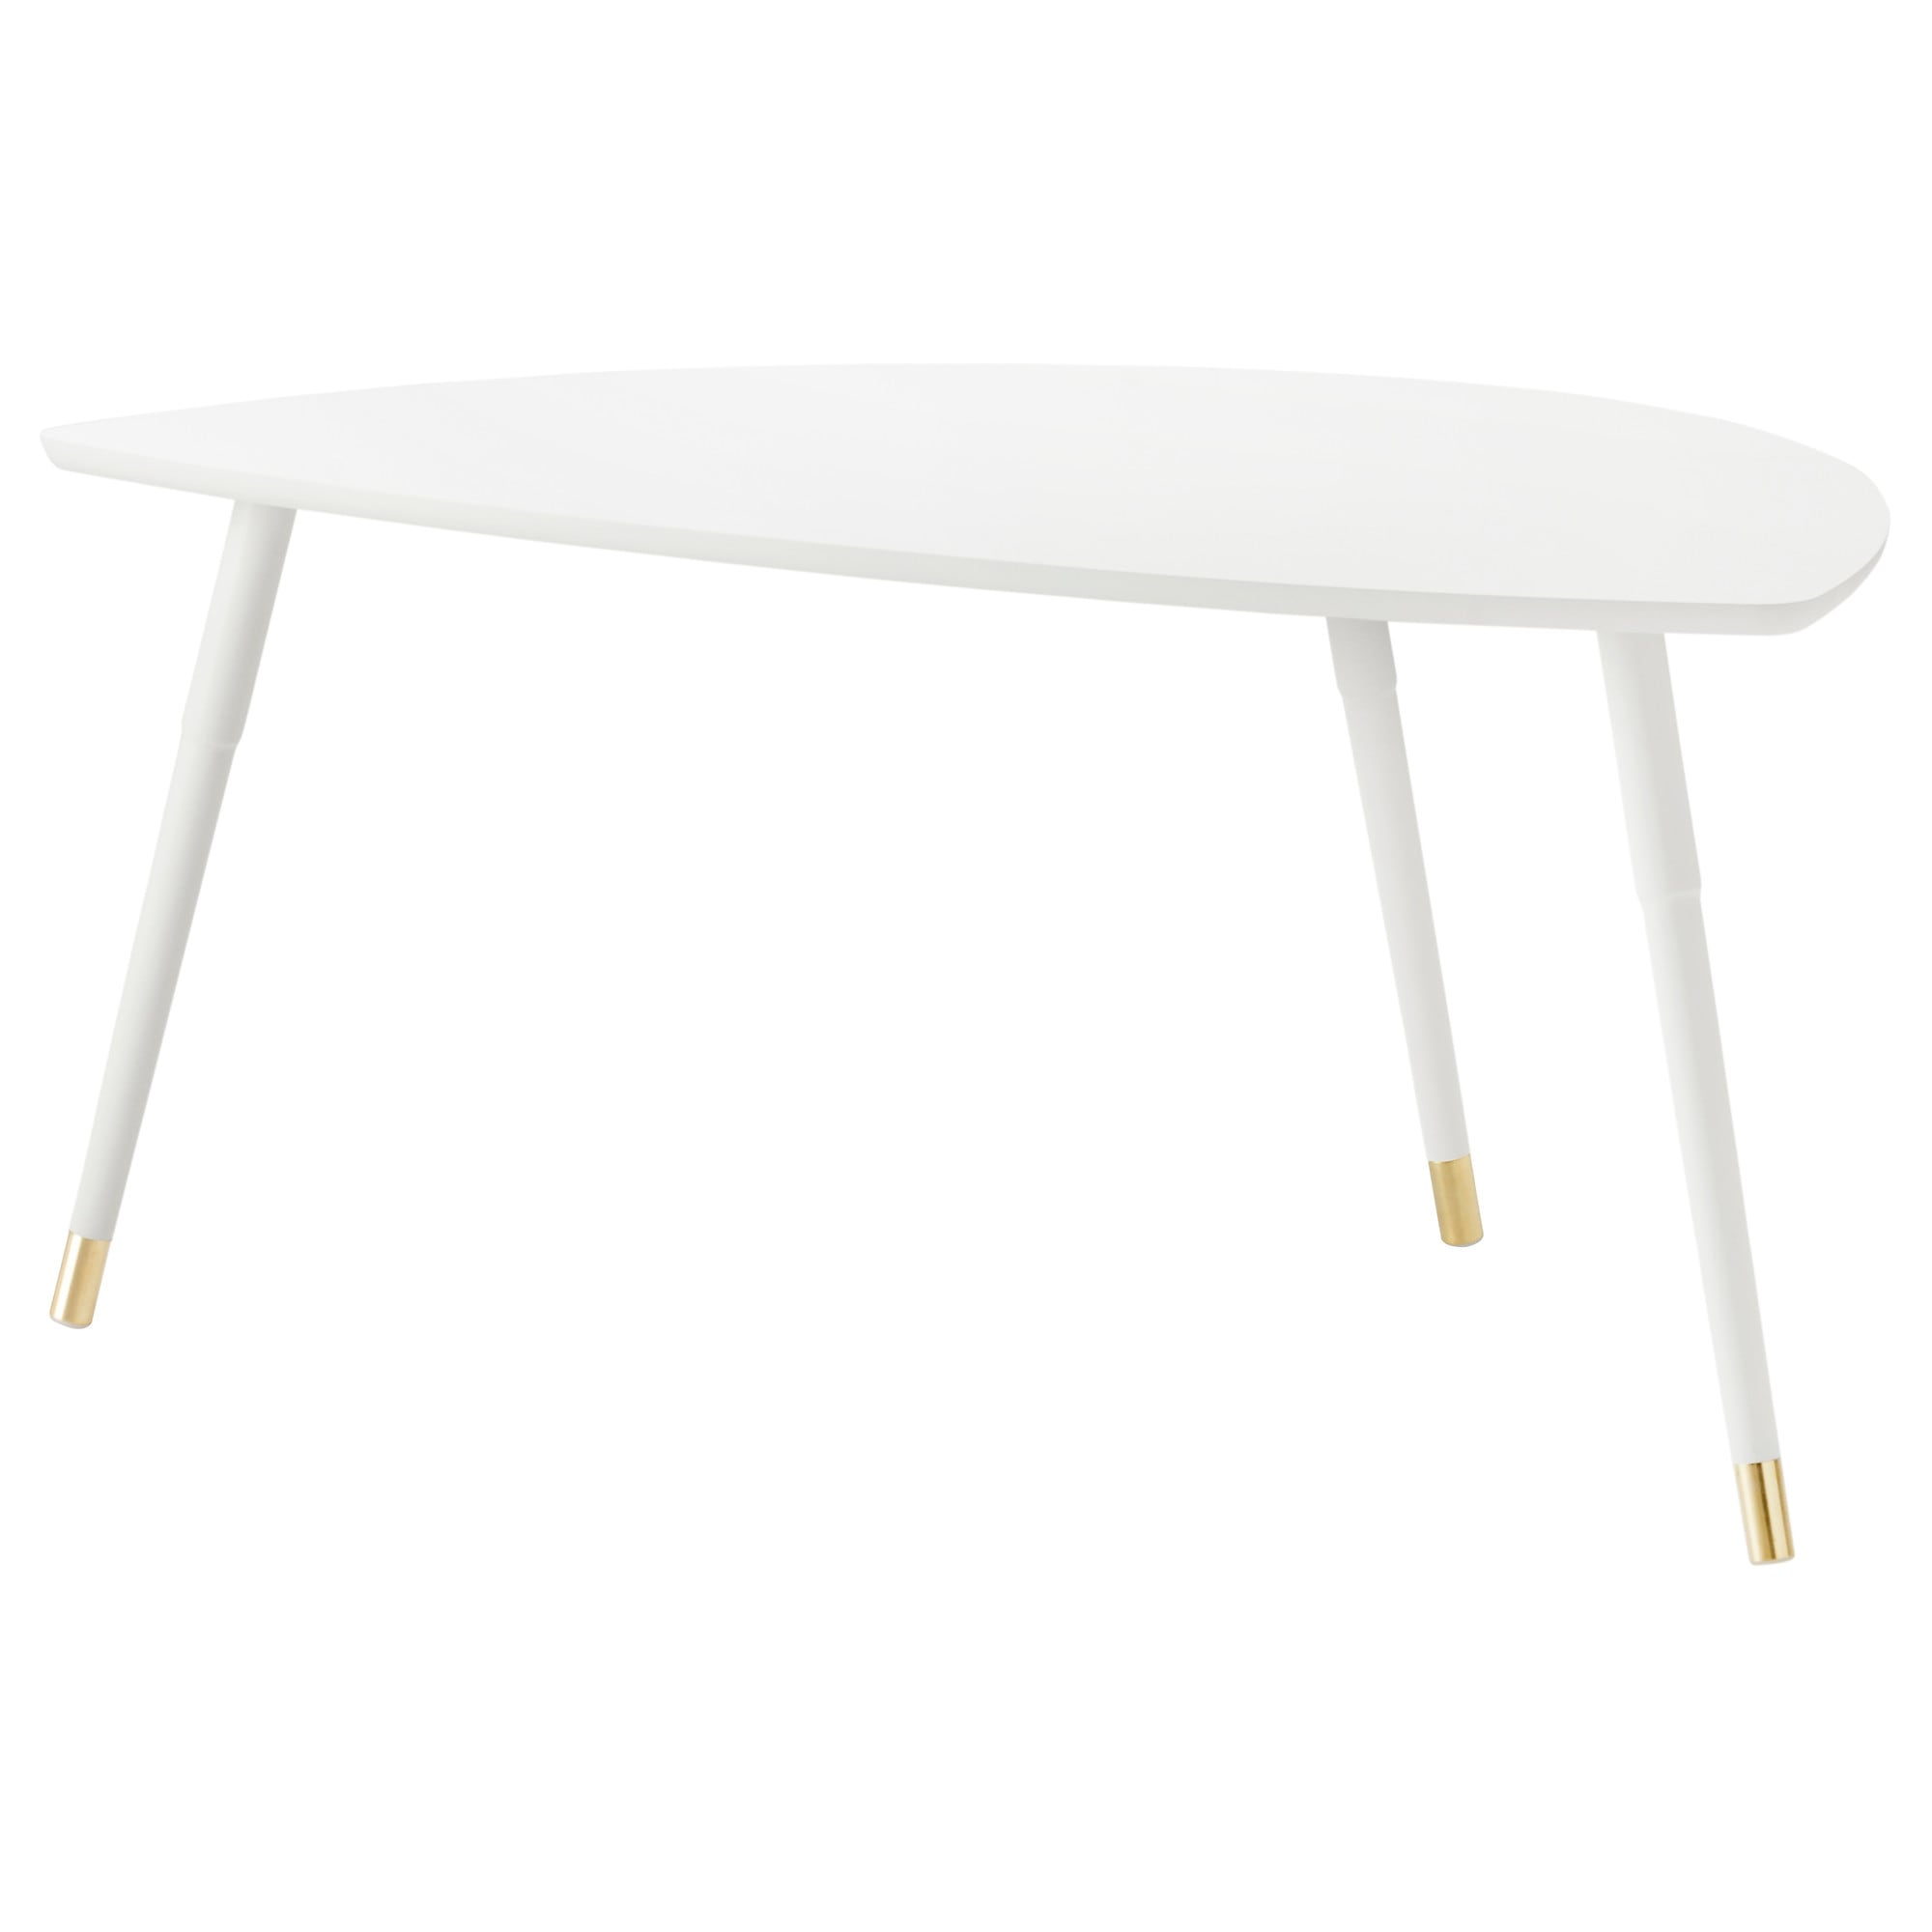 Table basse relevable ikea suisse - Table basse modulable ikea ...